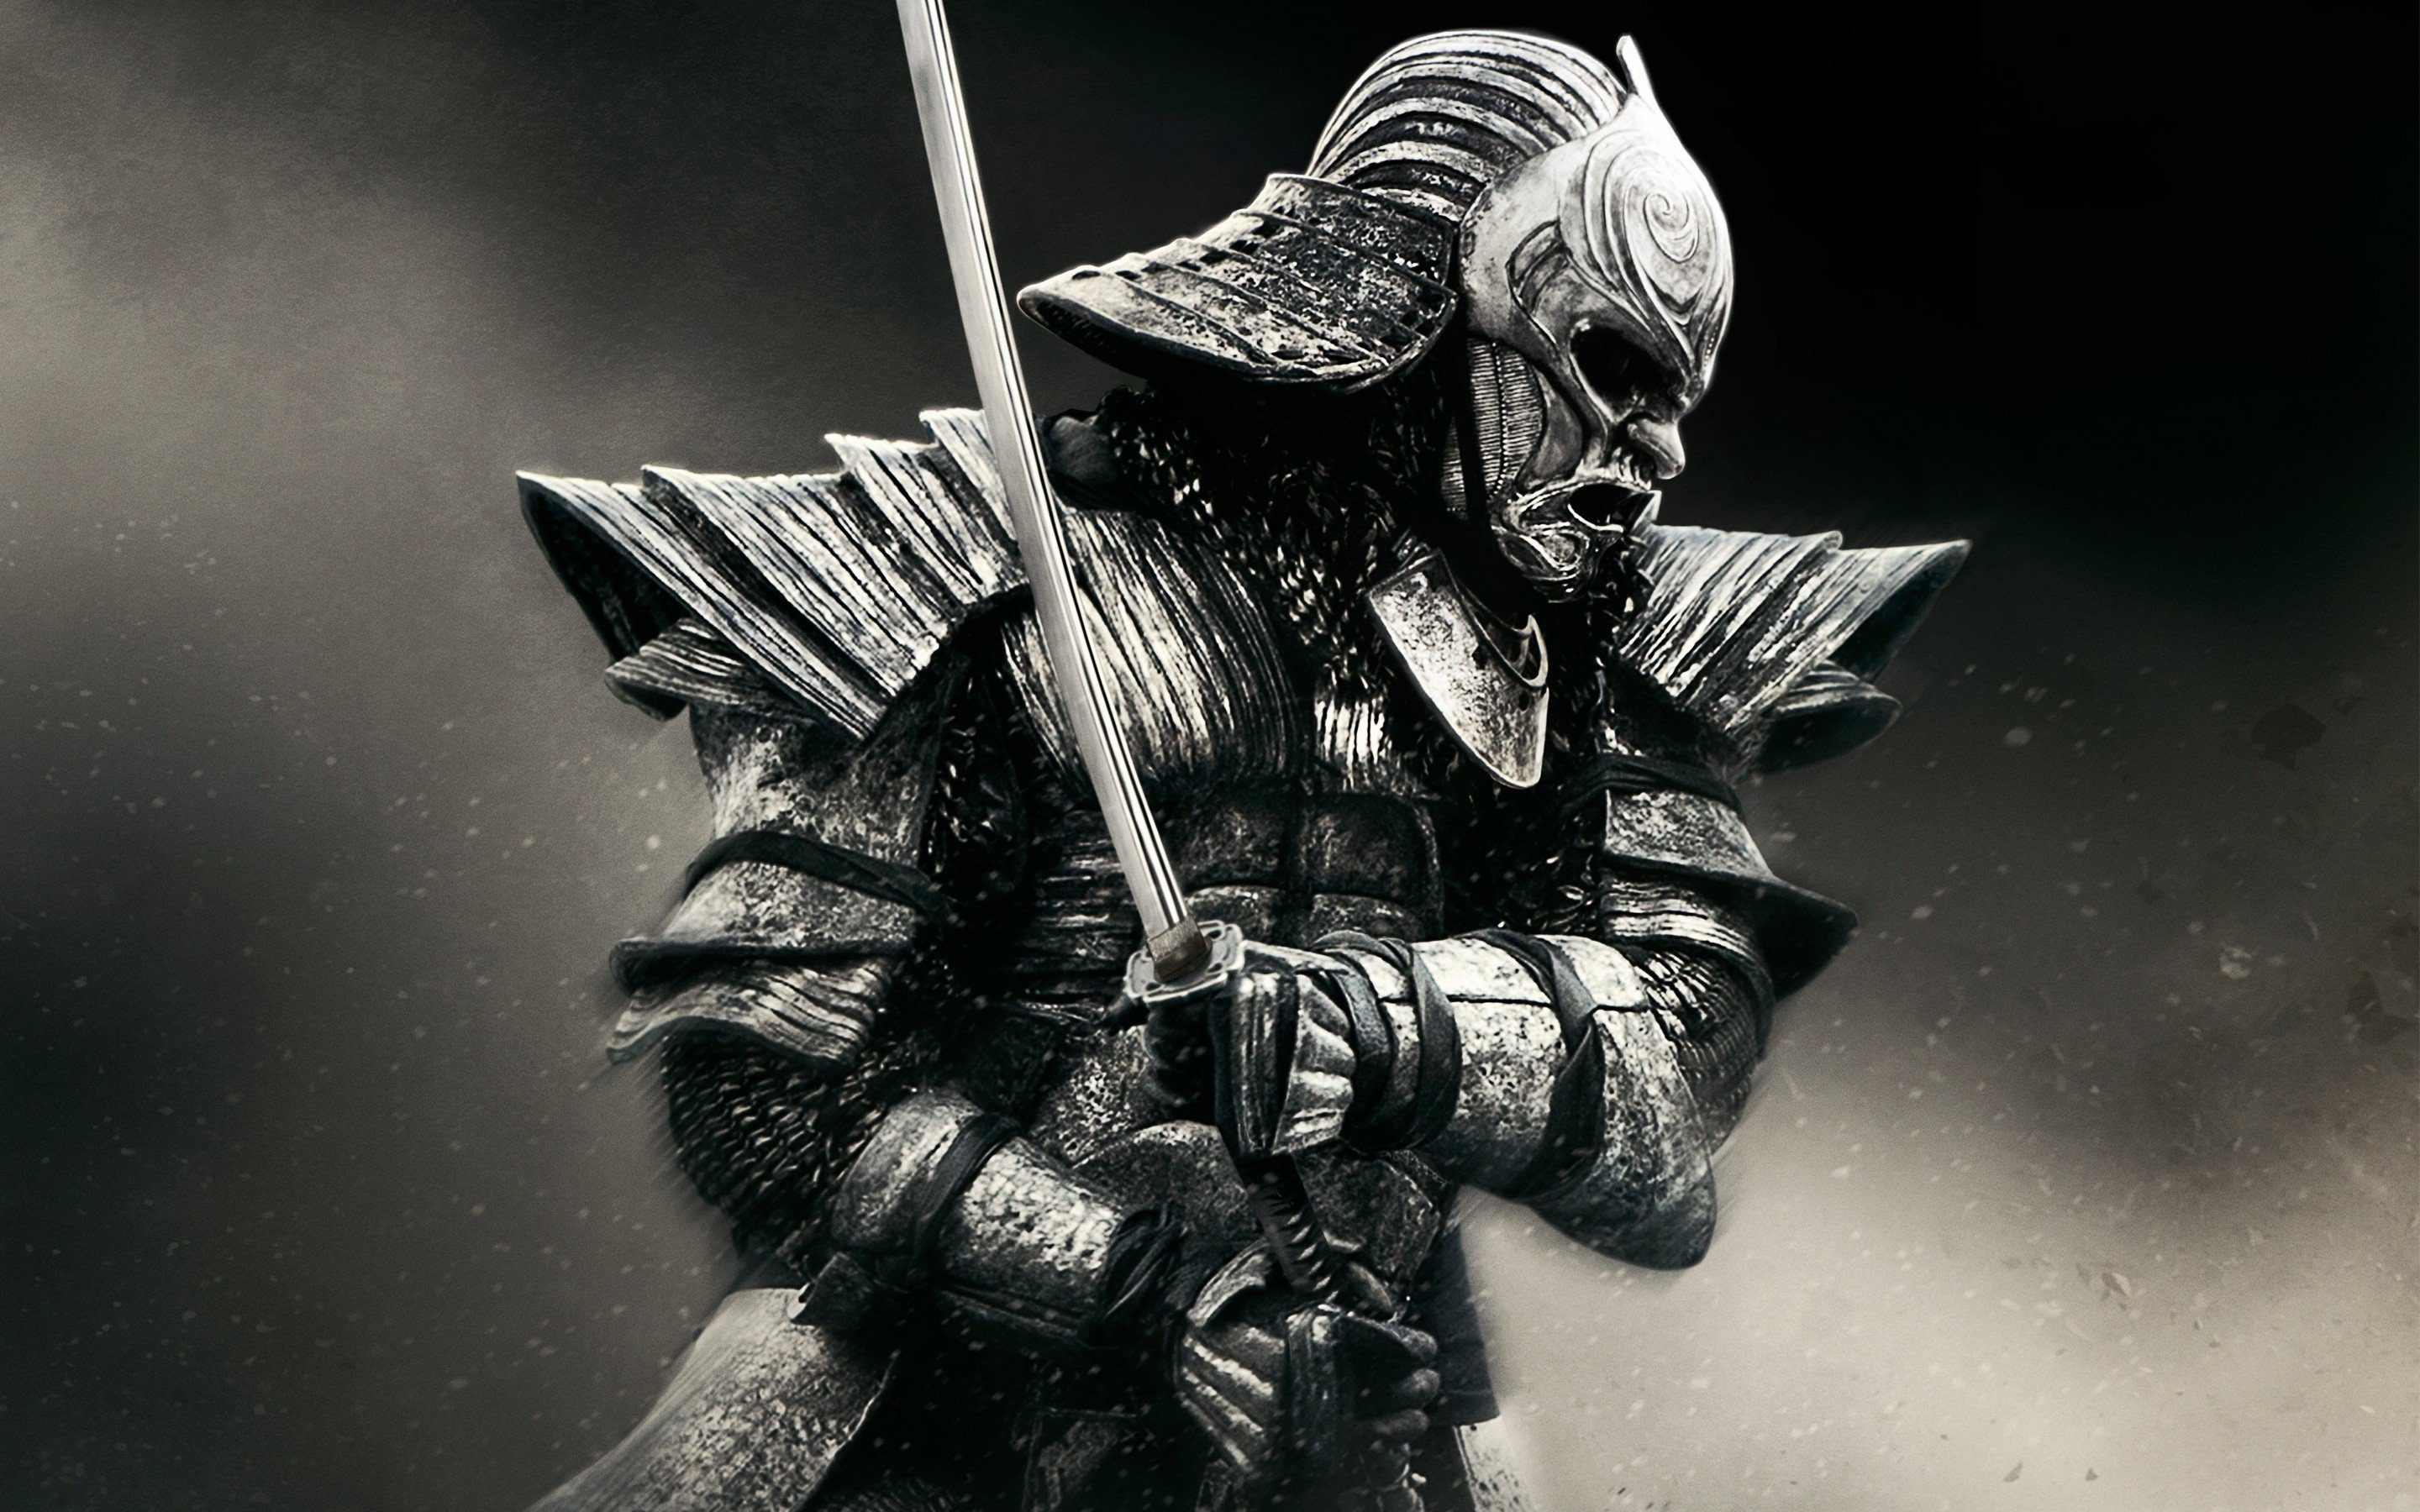 warrior in ronin hd movies 4k wallpapers images